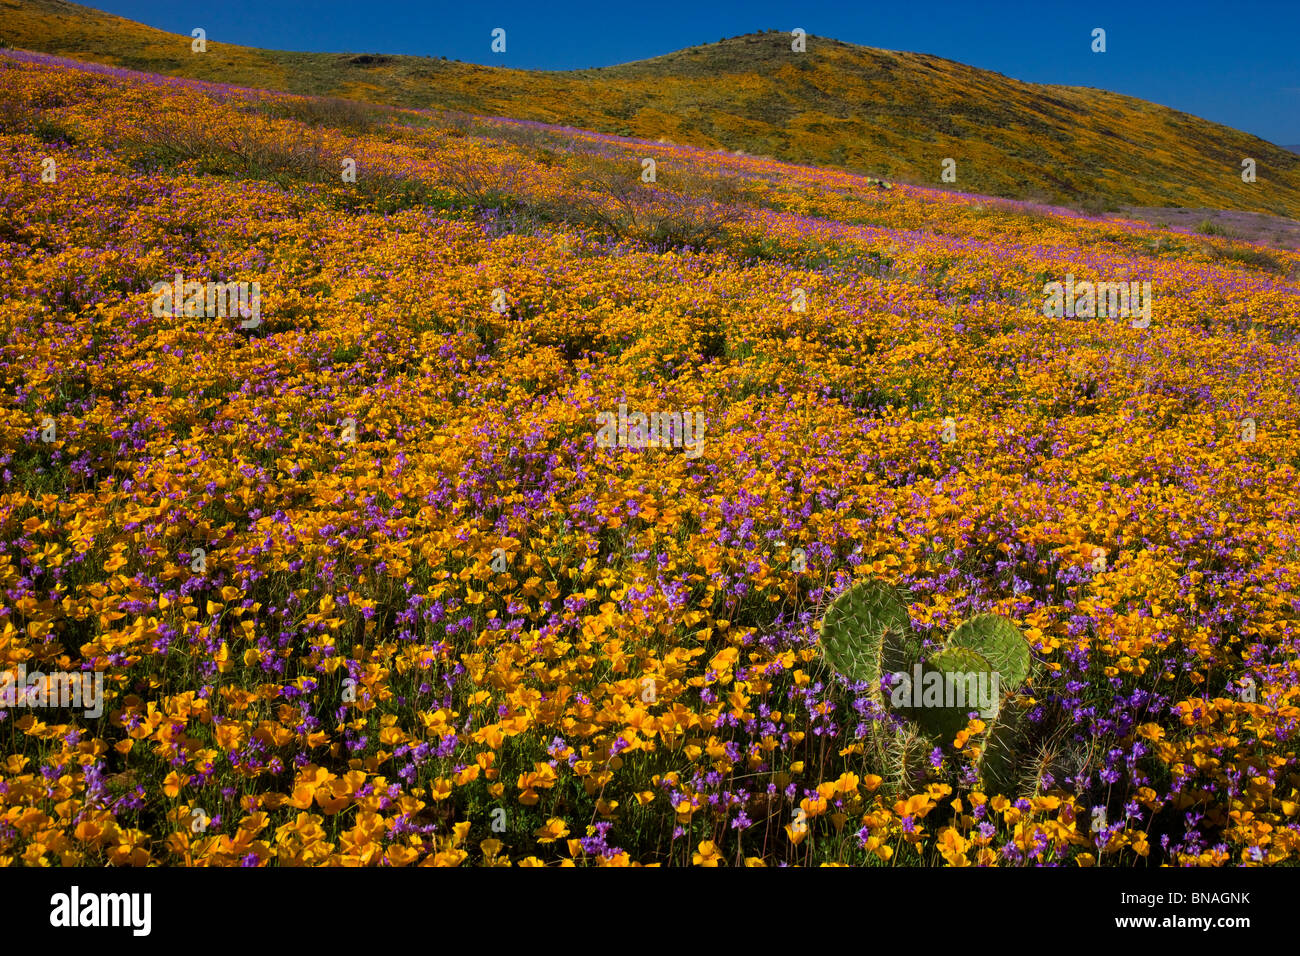 Wildflowers in Black Hills, Arizona. Stock Photo